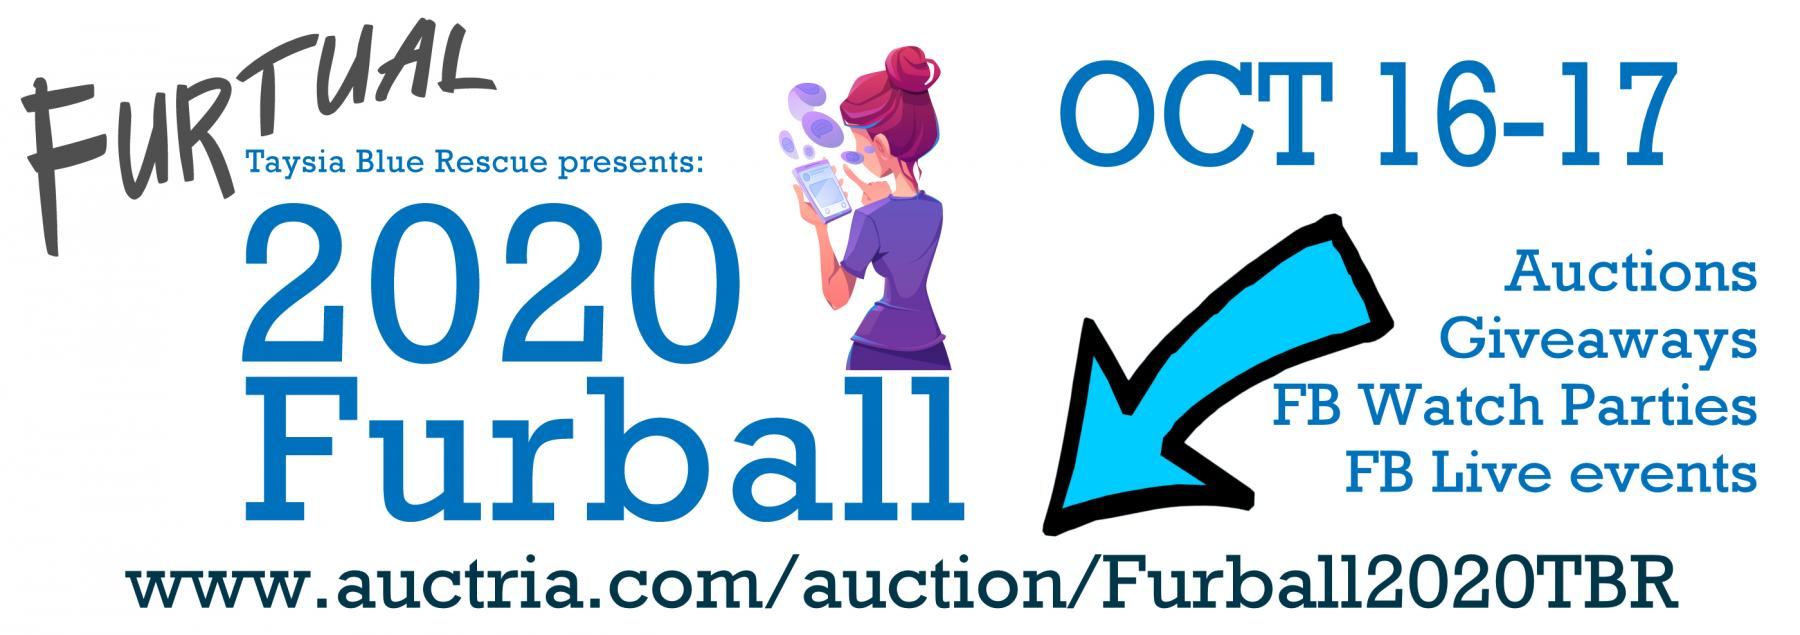 2020 Furball website banner